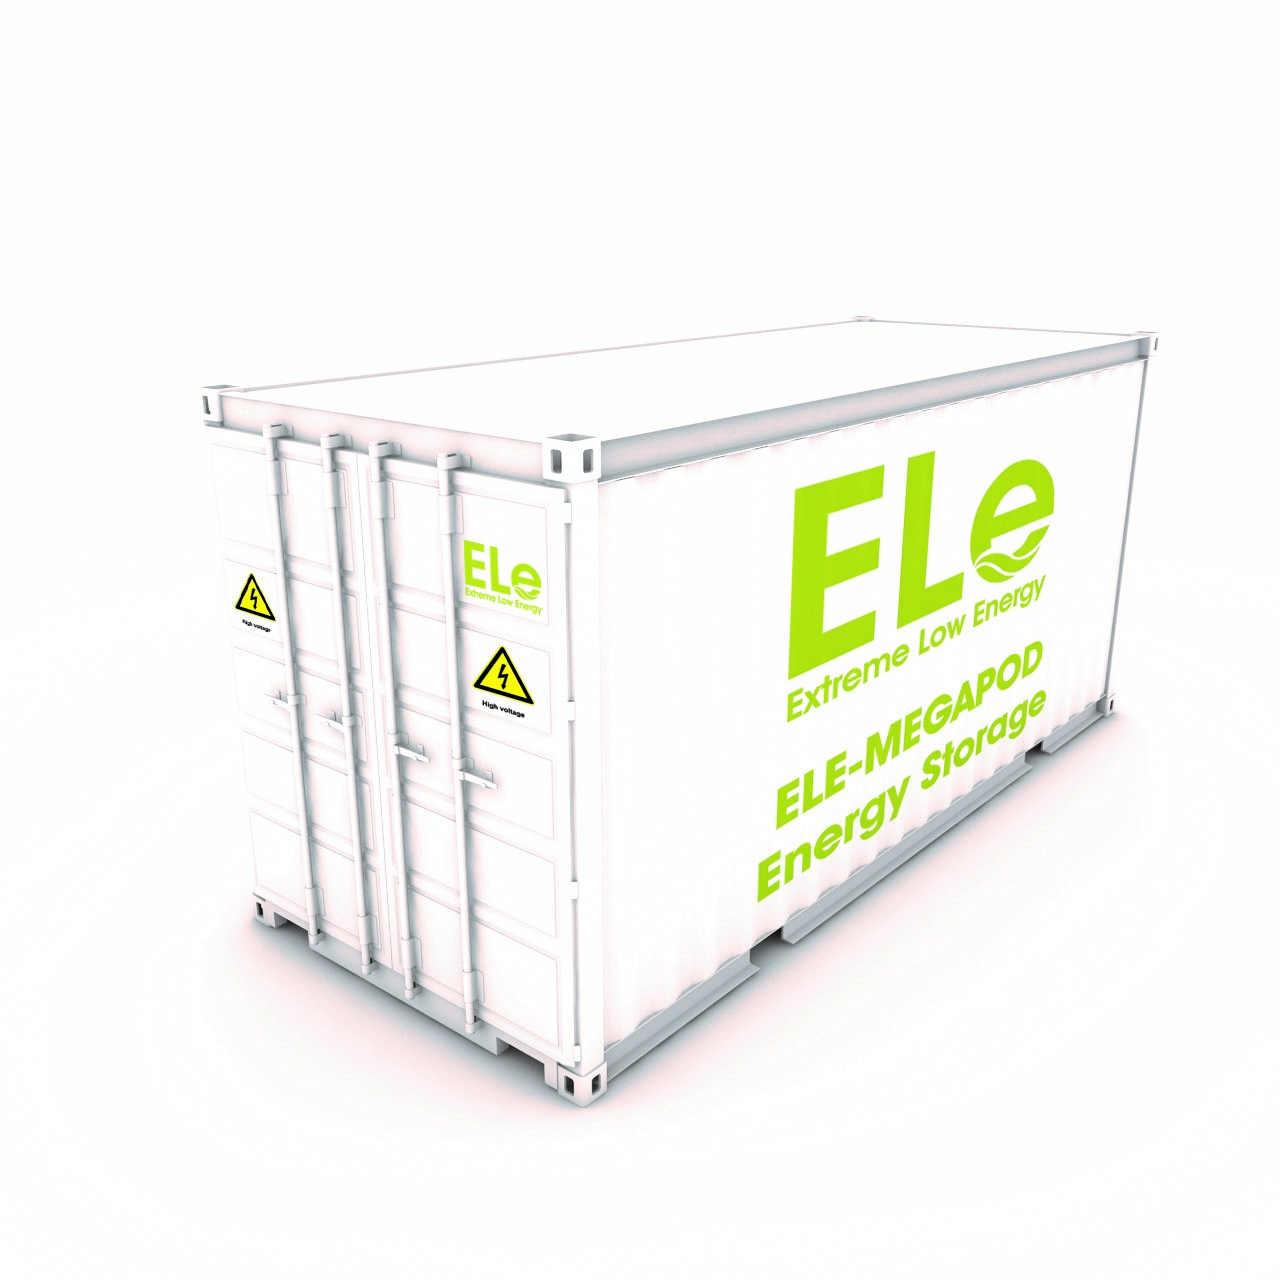 ELE MEGA-POD battery storage